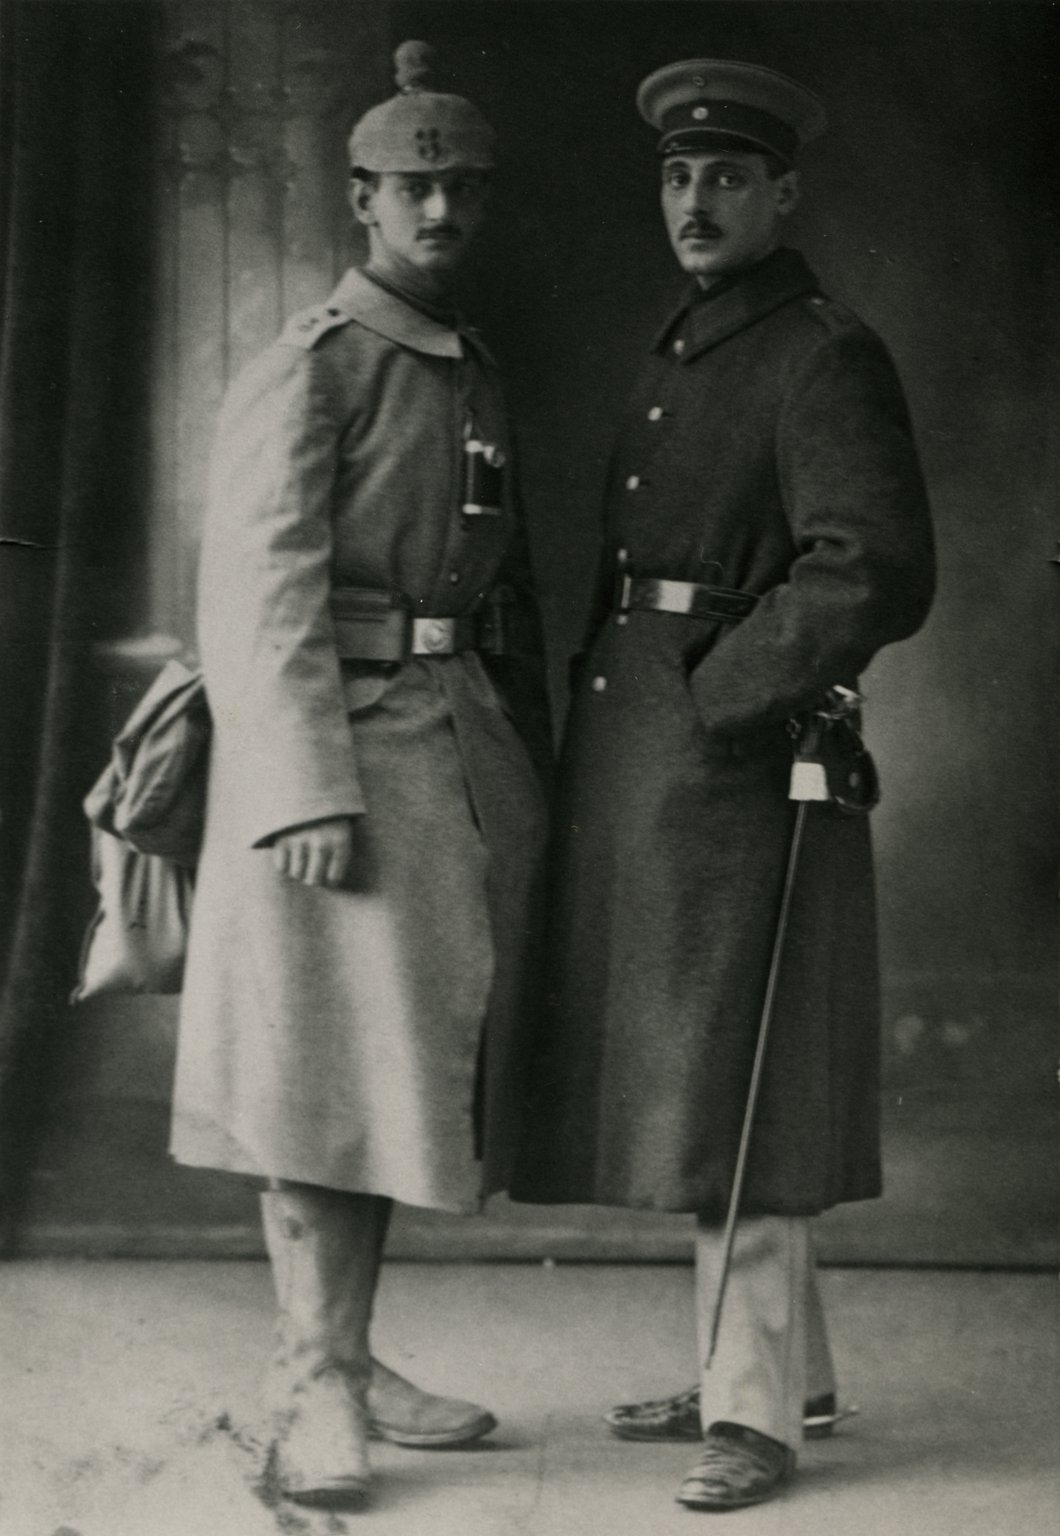 Otto (left) and his brother Robert serving in the German army during the First World War, 1914-1918.